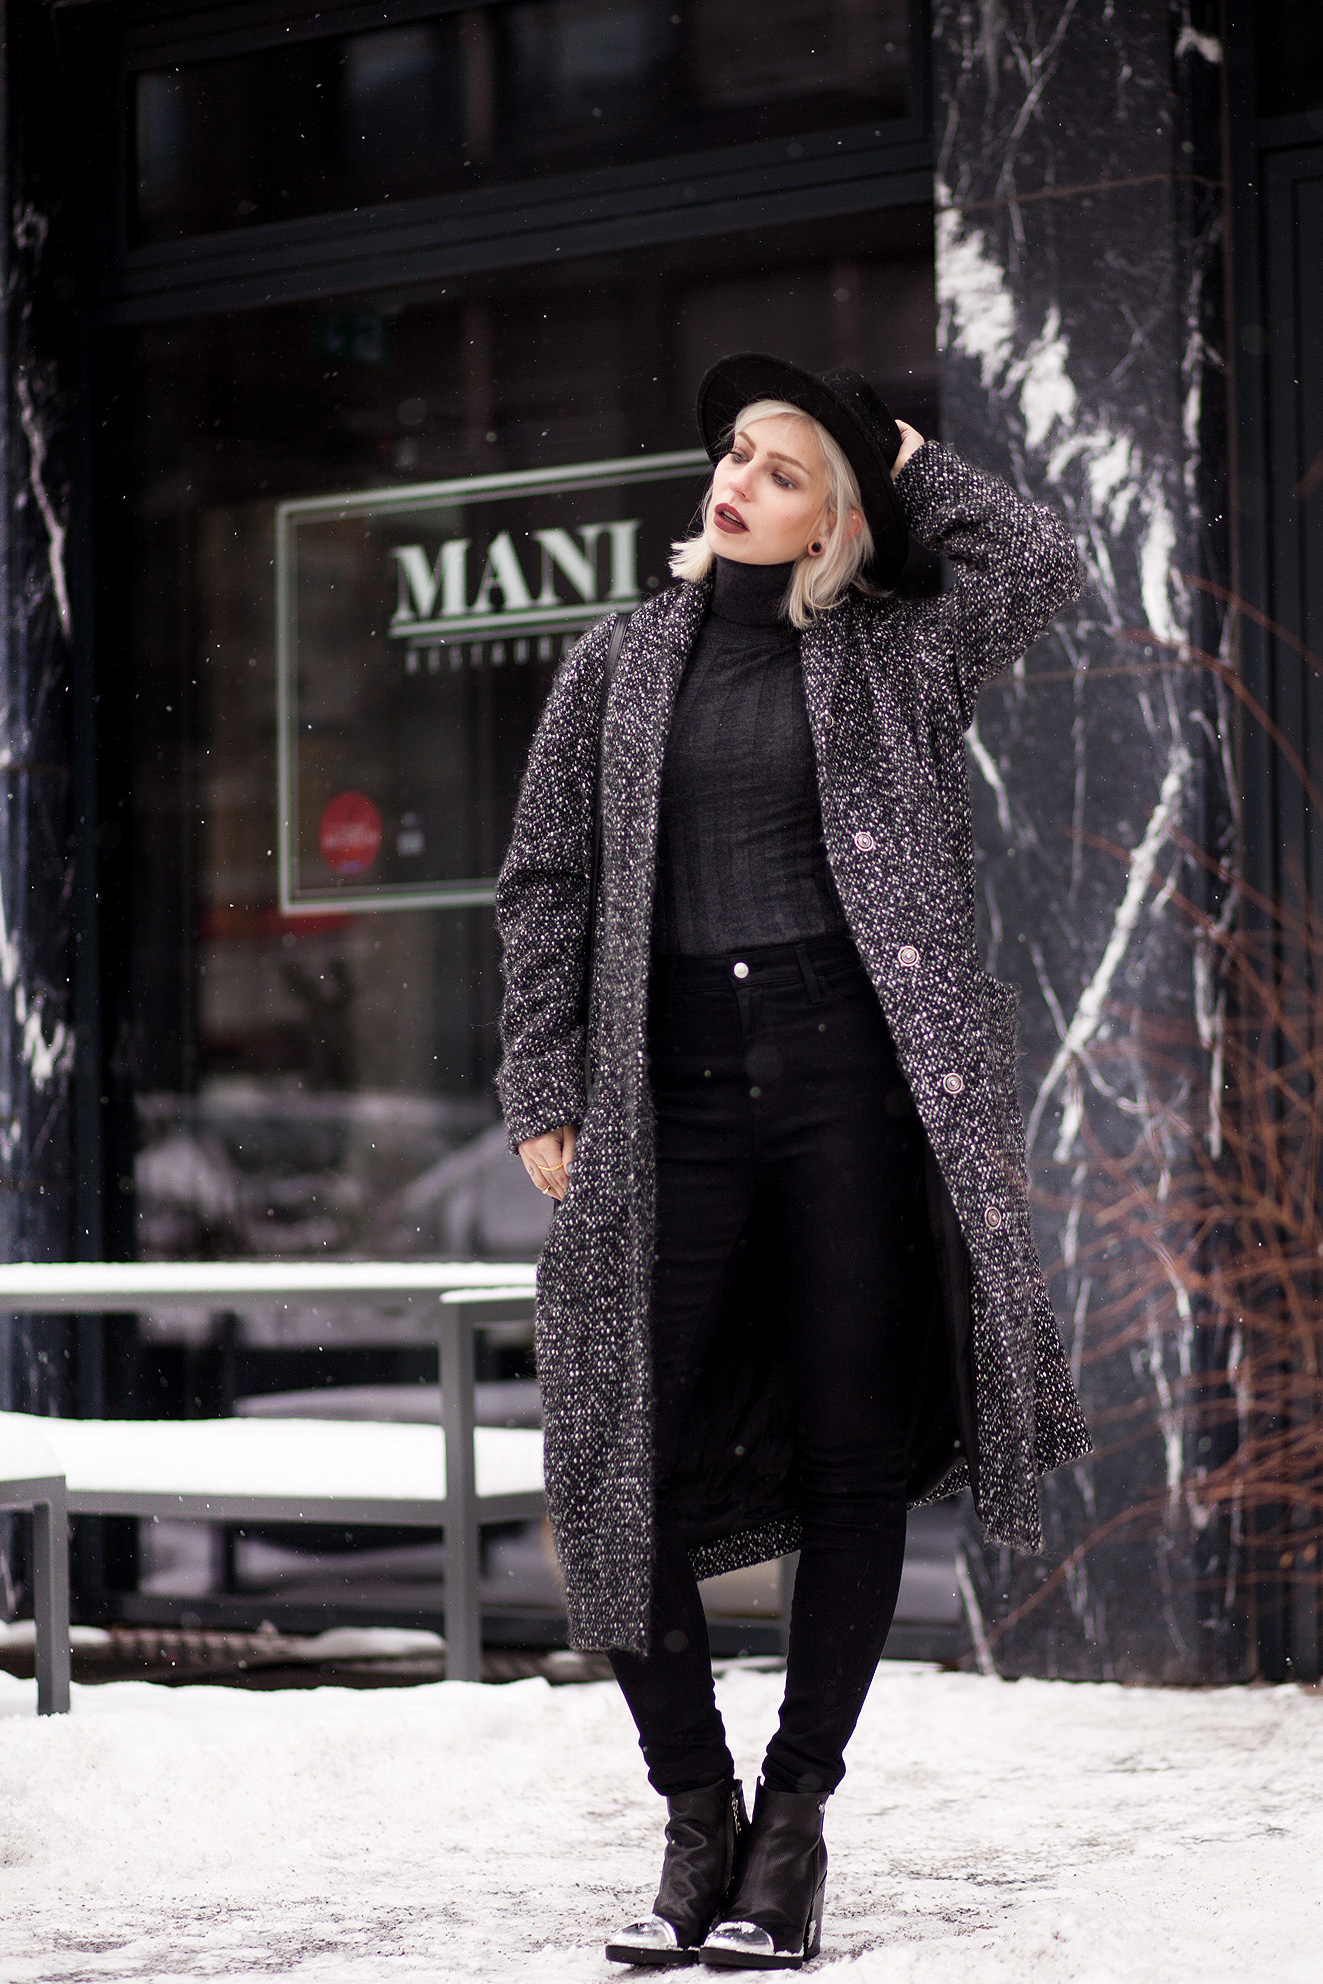 view more details on my blog   wearing black boots with a star from Love Moschino, an oversized wool coat from Marimekko, a black bag from Saint Laurent and a black jeans from AG   black, edgy, winter fashion   street style taken in Berlin   snow